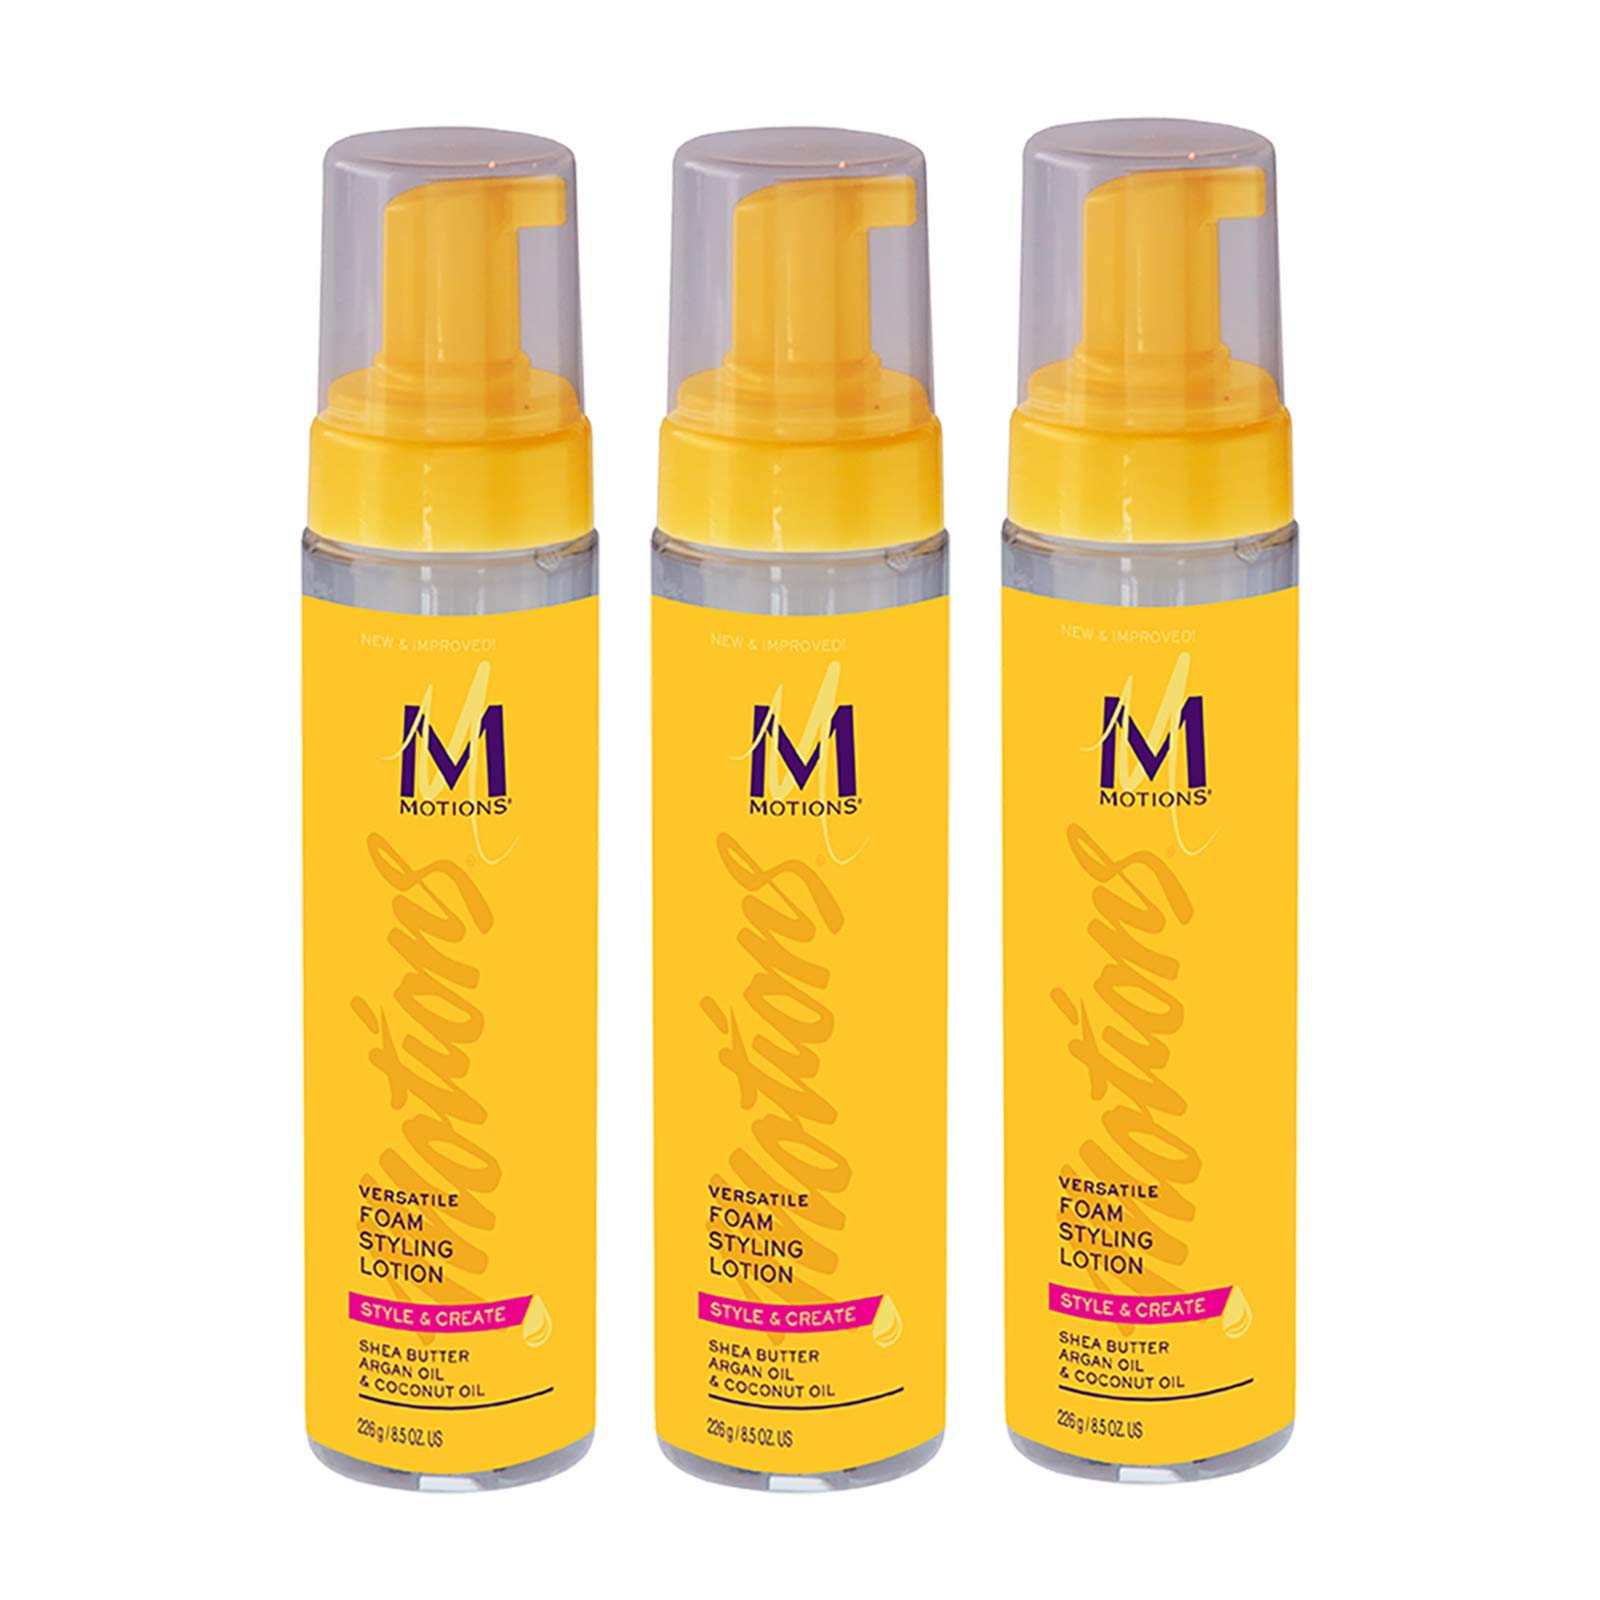 Motions Style and Create Versatile Foam Styling Lotion (3 Pack) - For Use on All Hair Types, Lightweight Formula, Contains Shea Butter, Argan Oil, Coconut Oil, 8.5 oz by Motions